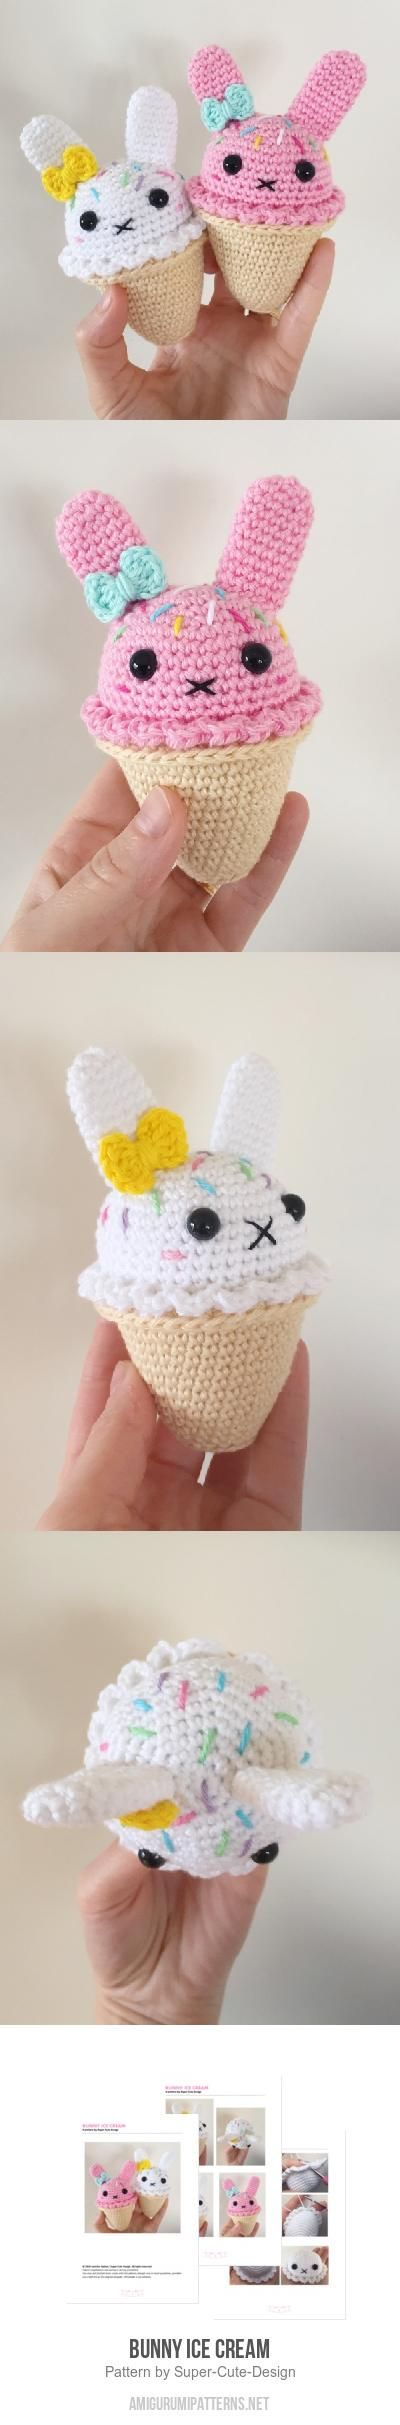 Bunny Ice Cream amigurumi pattern by Super Cute Design